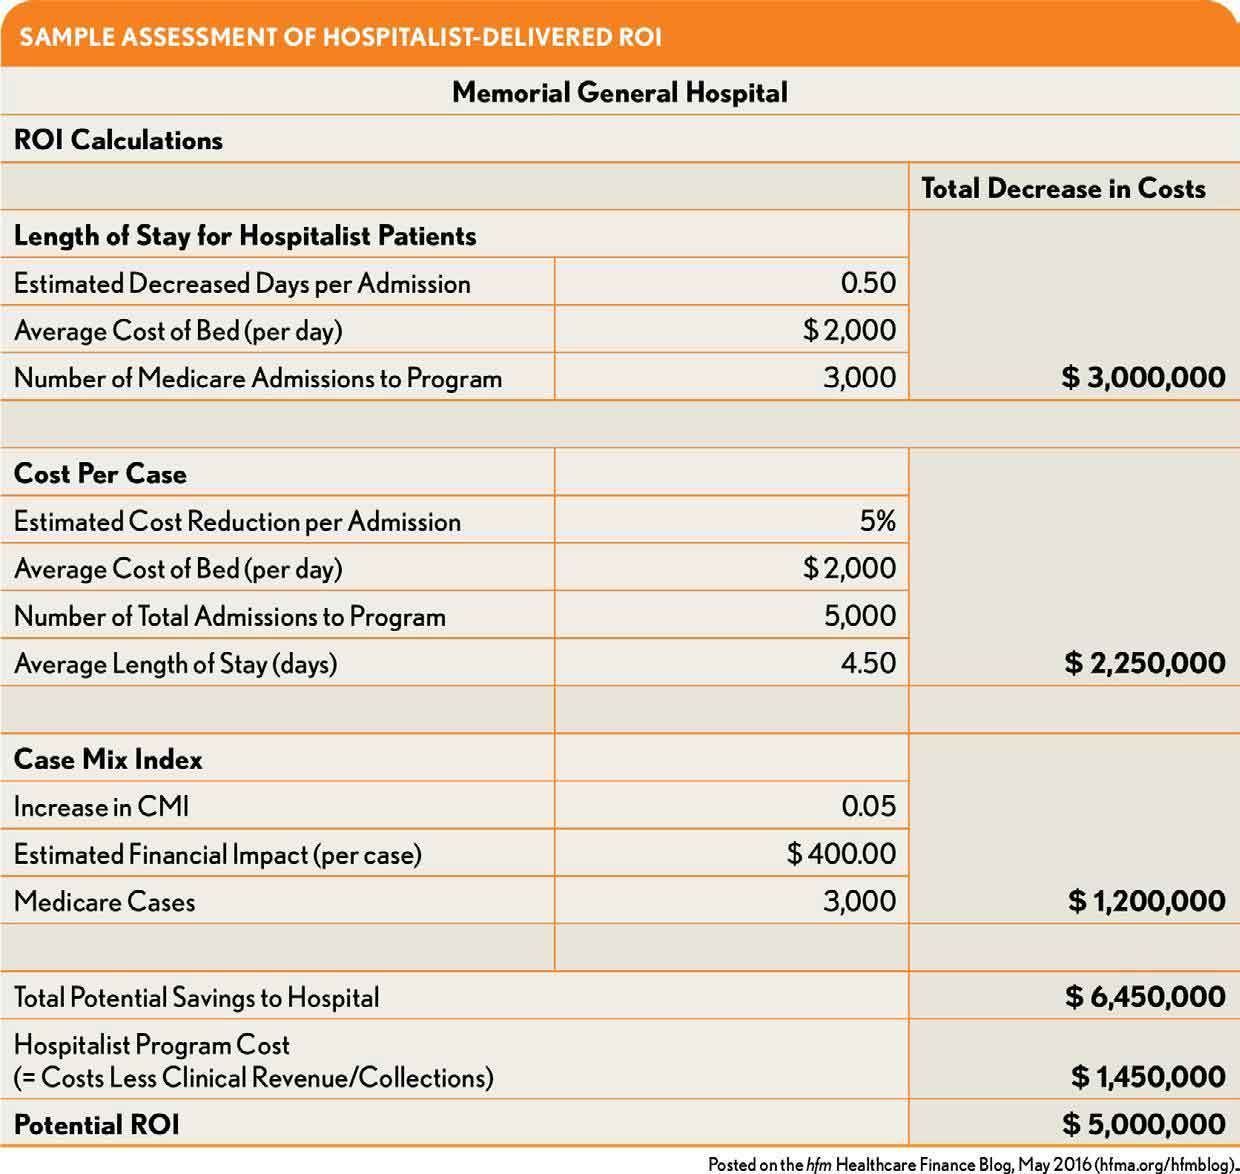 Sample Assessment of Hospitalist-Delivered ROI